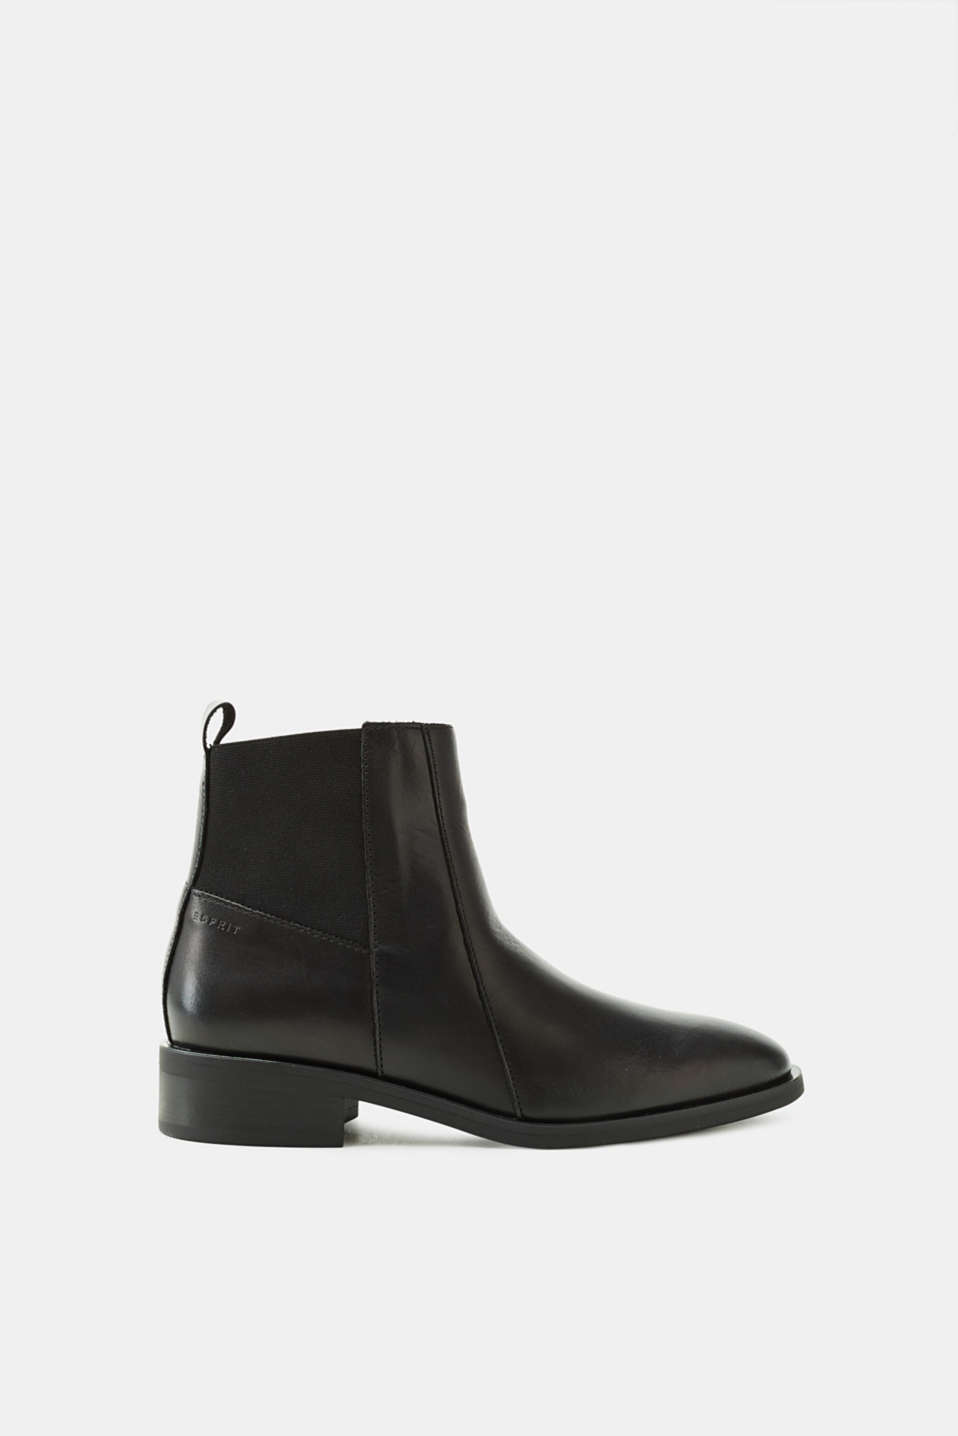 Esprit - Chelsea boot made of leather